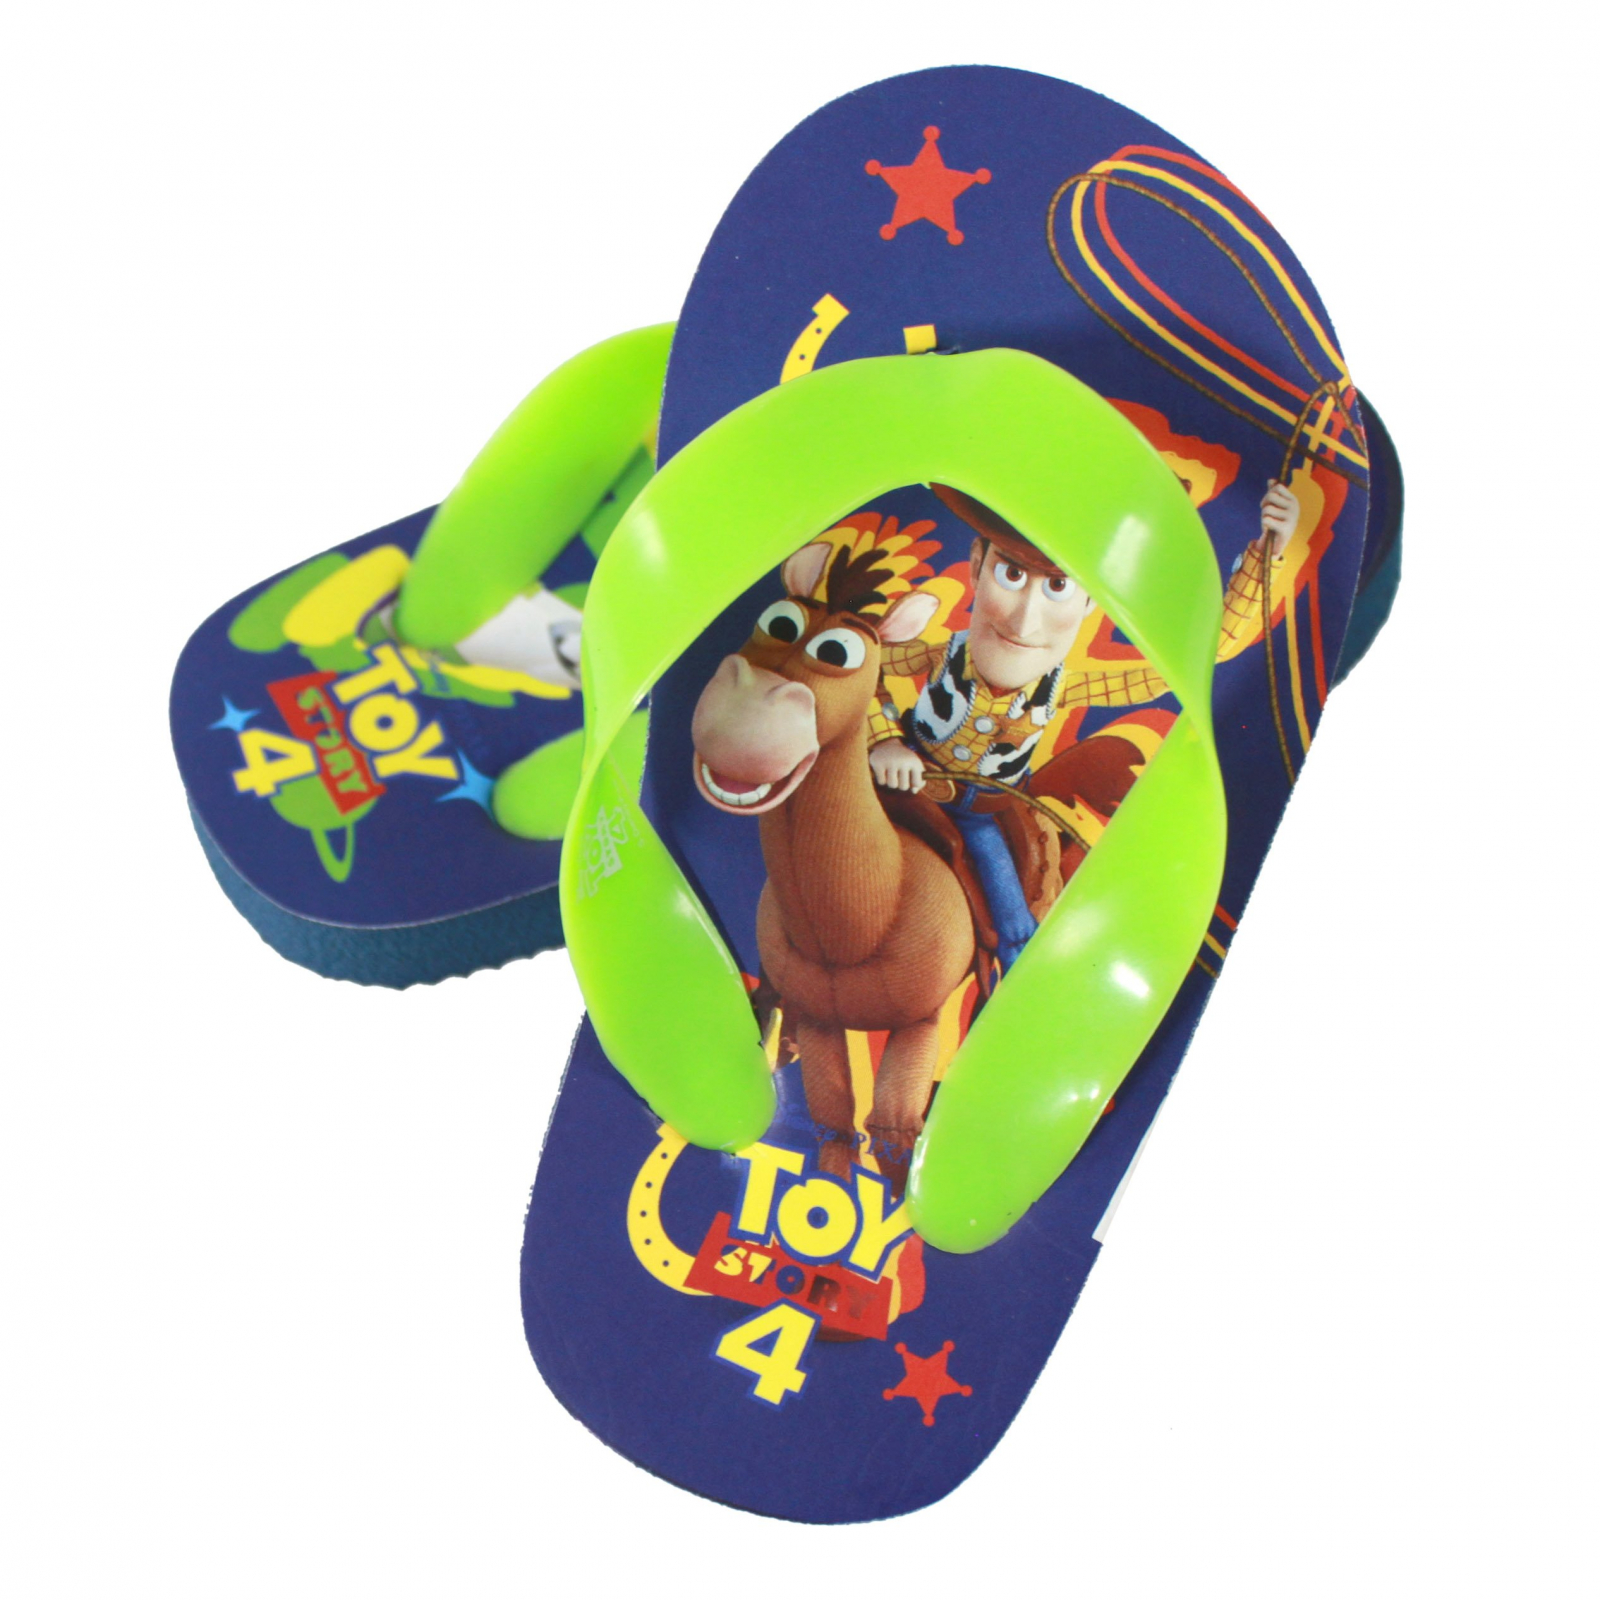 Disney Pixar Toy Story 4 Kid Sandals Green Strap Medium 13/1